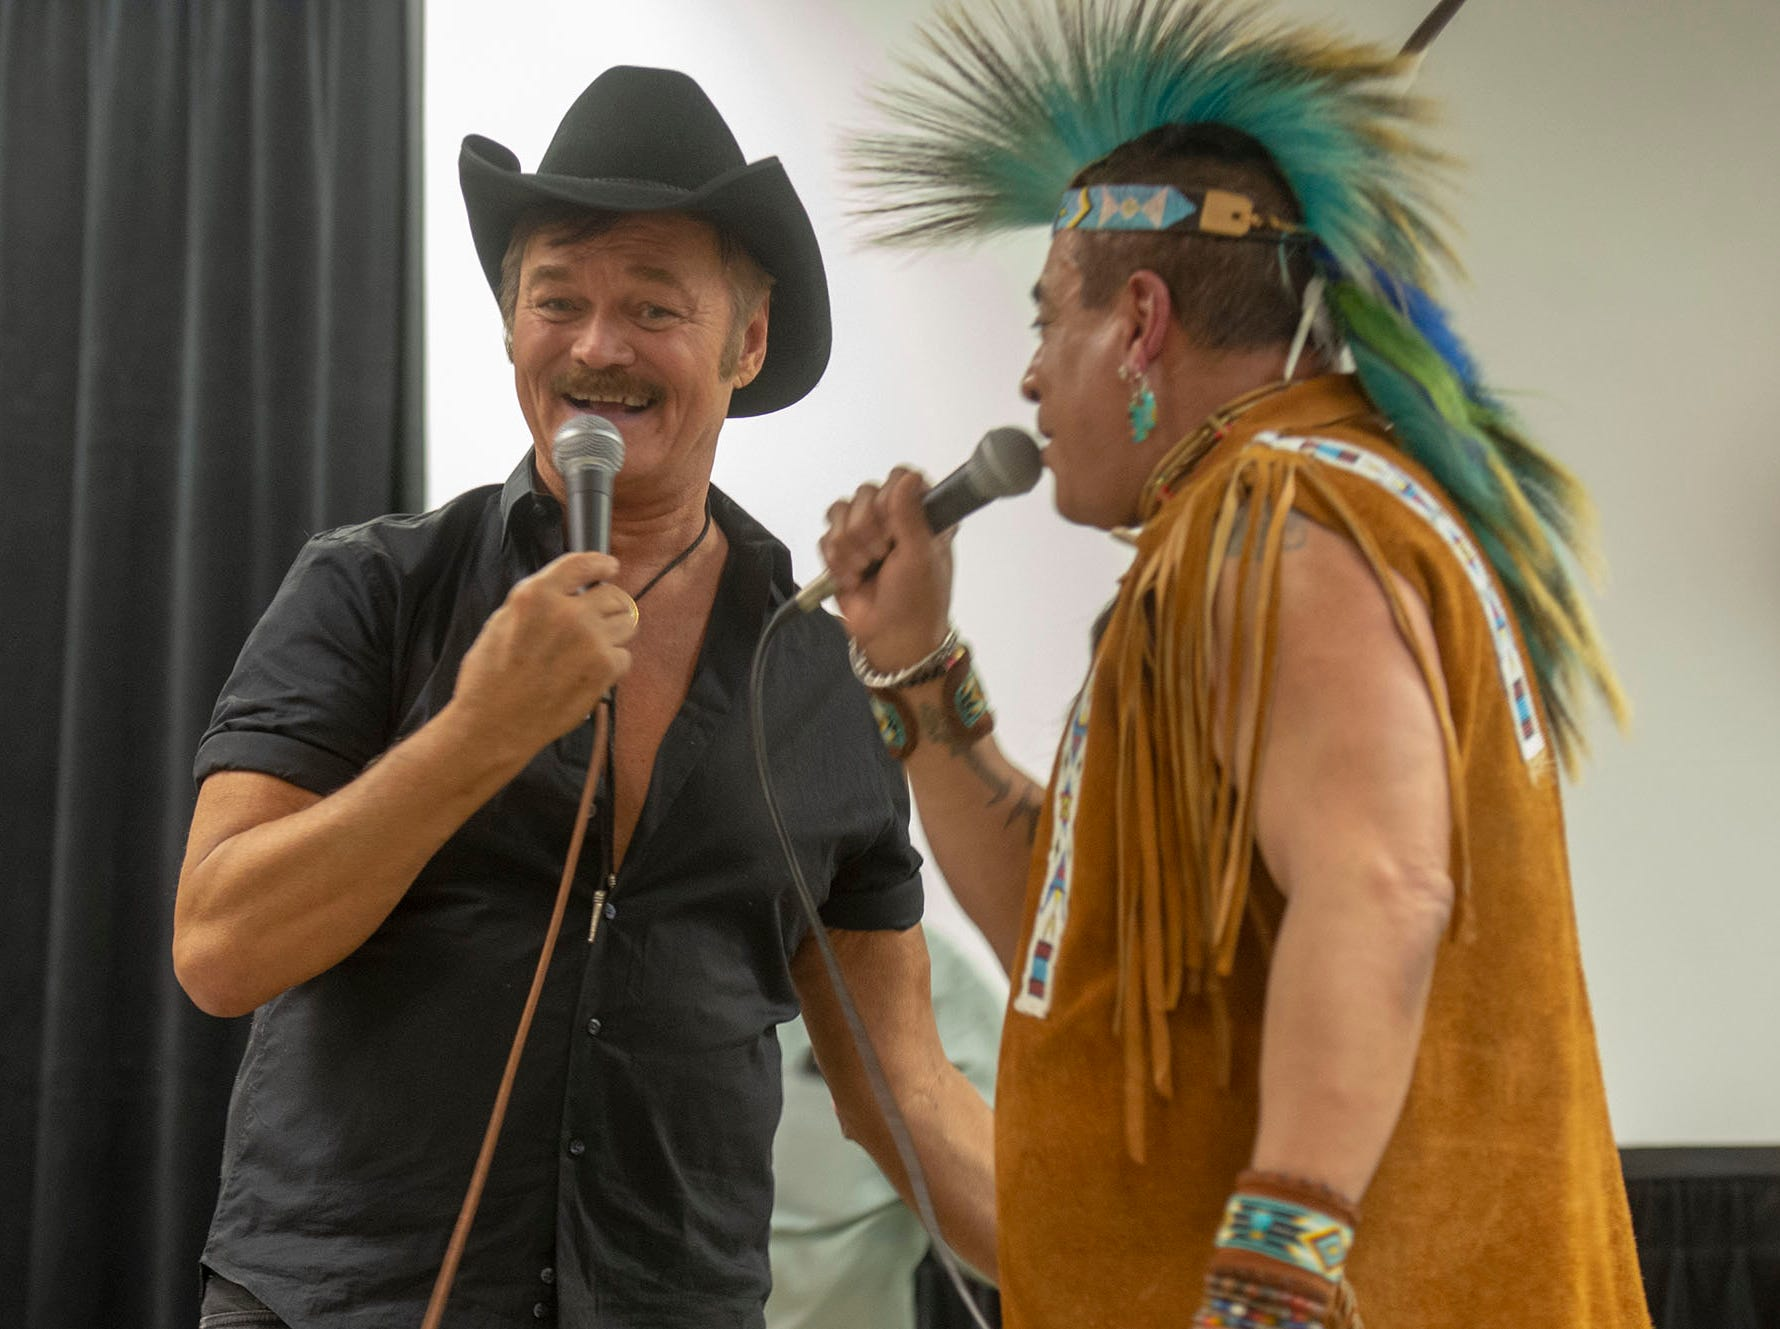 """Because they couldn't not sing the Village People's most famous song, Randy Jones and Felipe Rose closed their show with """"Y.M.C.A."""" on Saturday at the White Rose Comic Con, which runs through Sunday, March 24, 2019 at Utz Arena of the York Fairgrounds."""